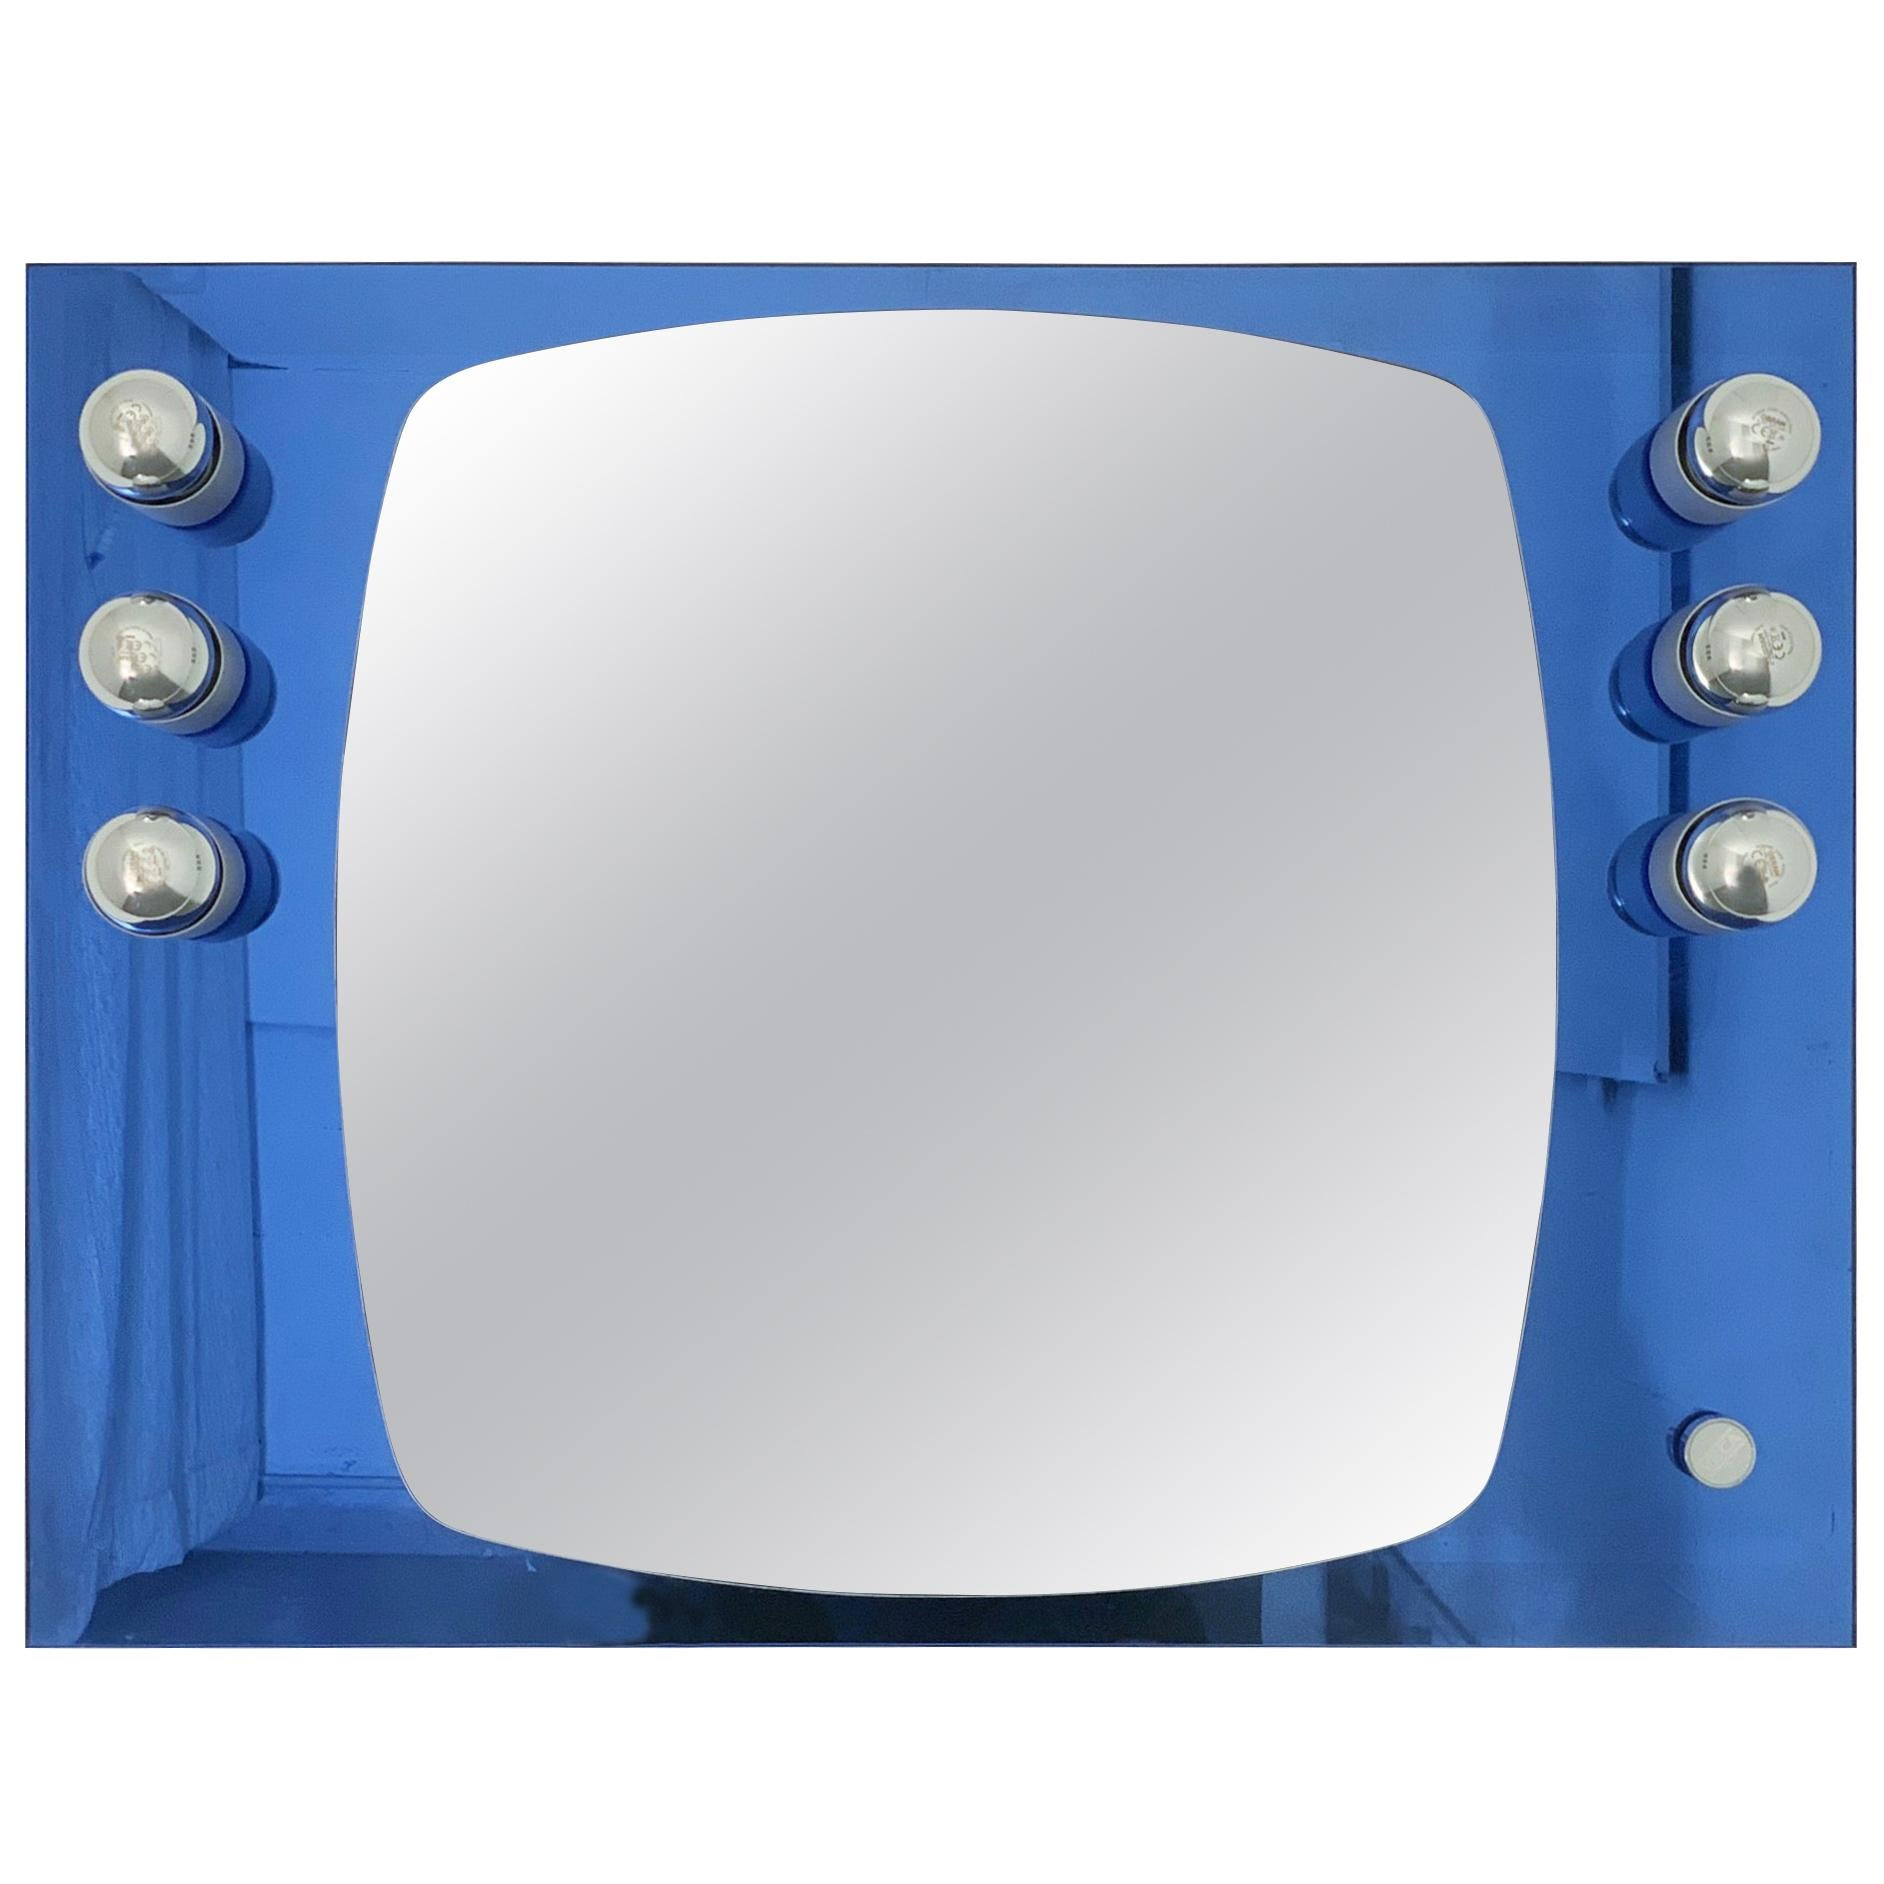 Blue Rectangular Mirror with Lights by Veca